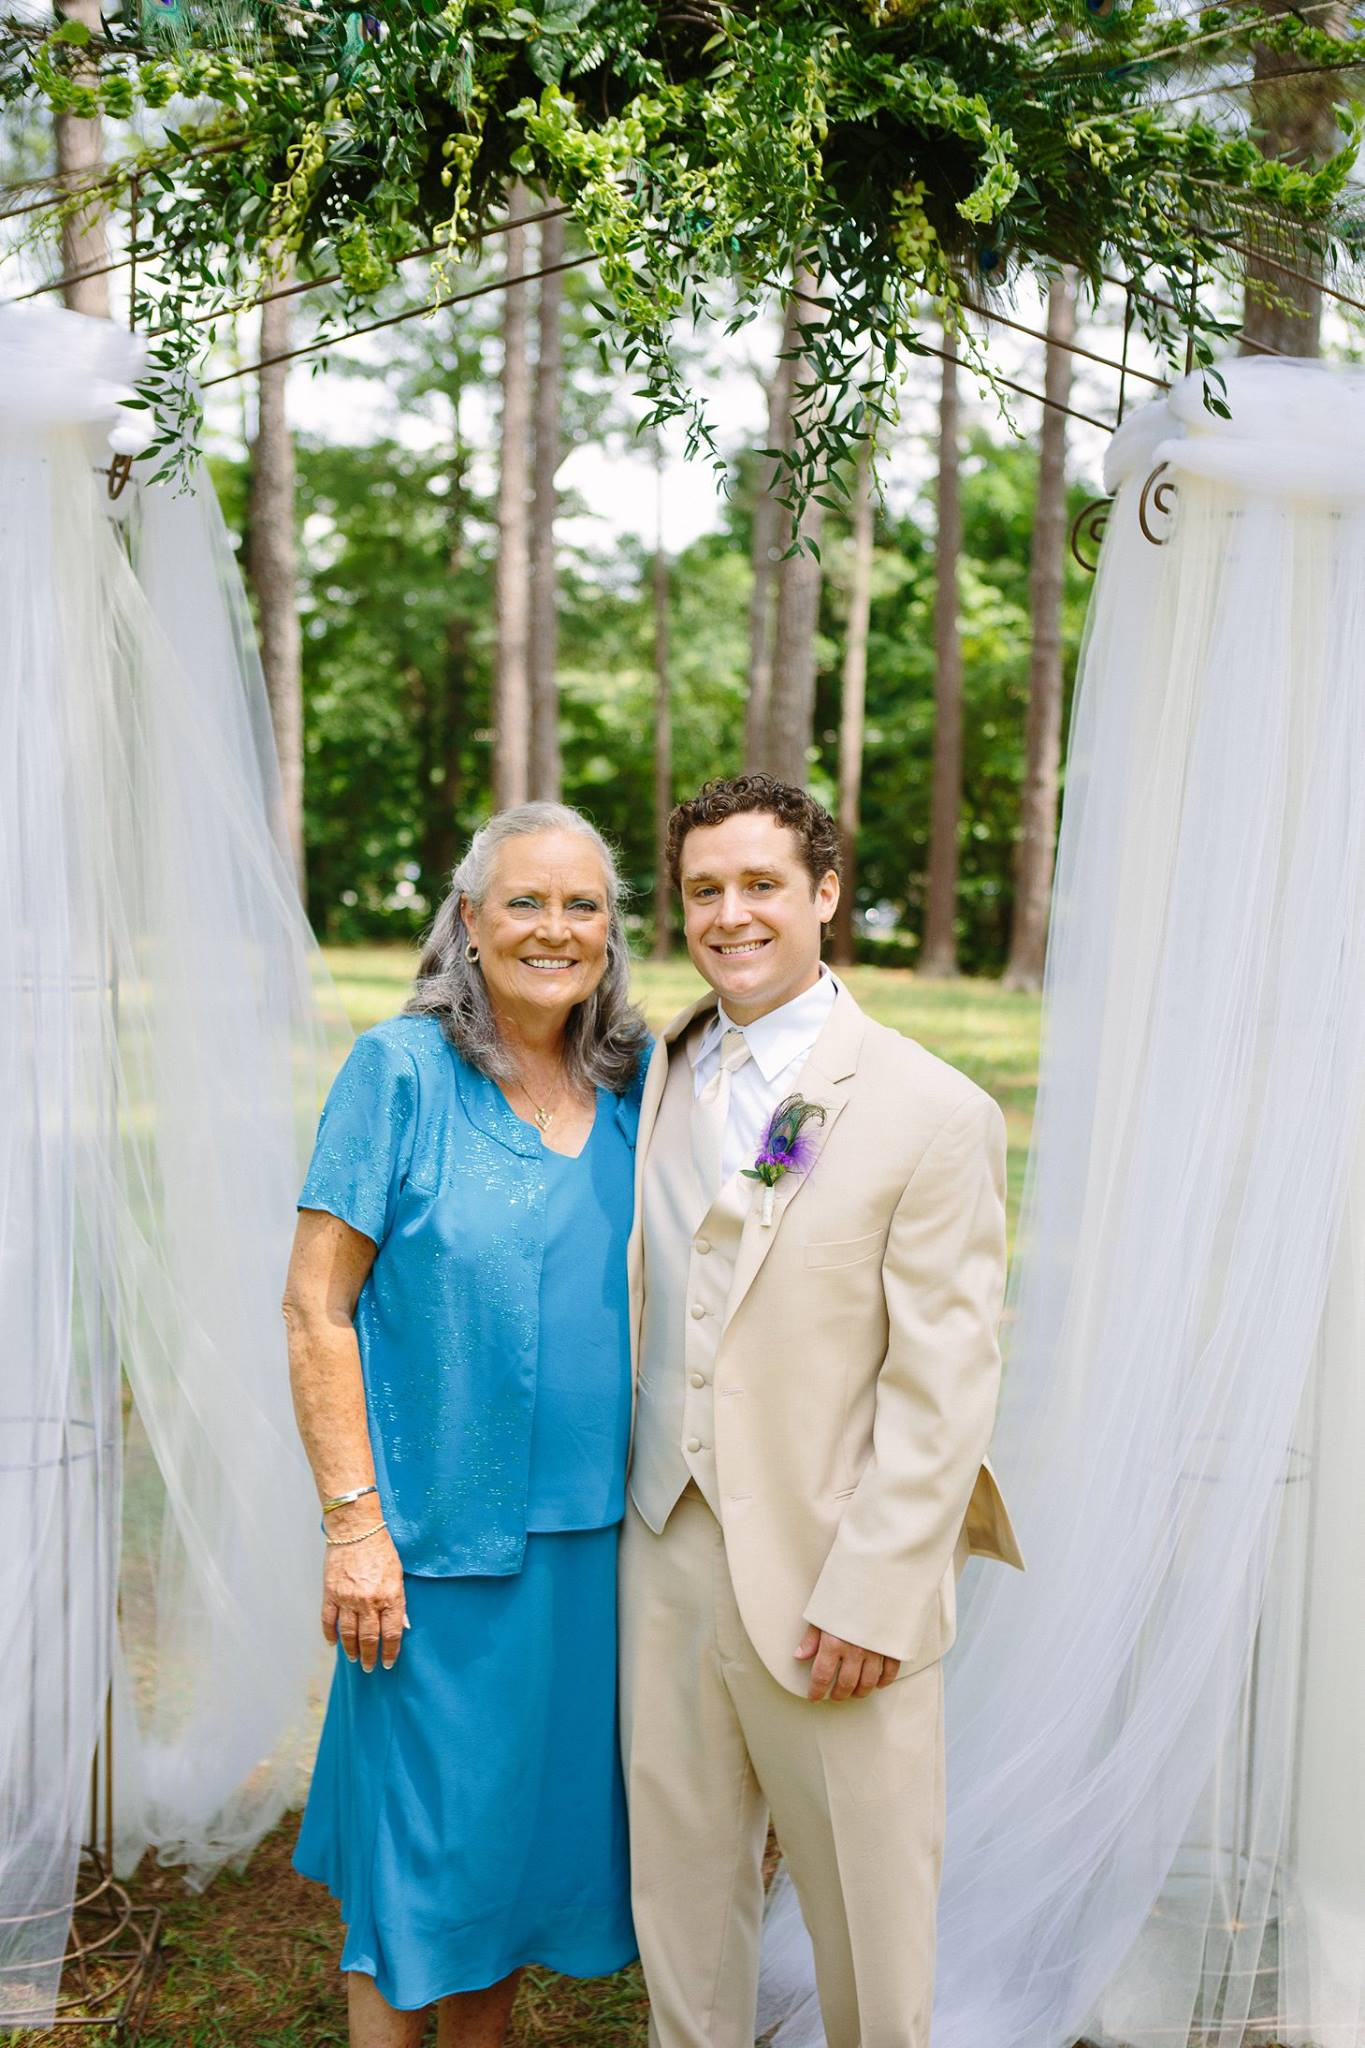 Mom and I at my wedding in 2014.